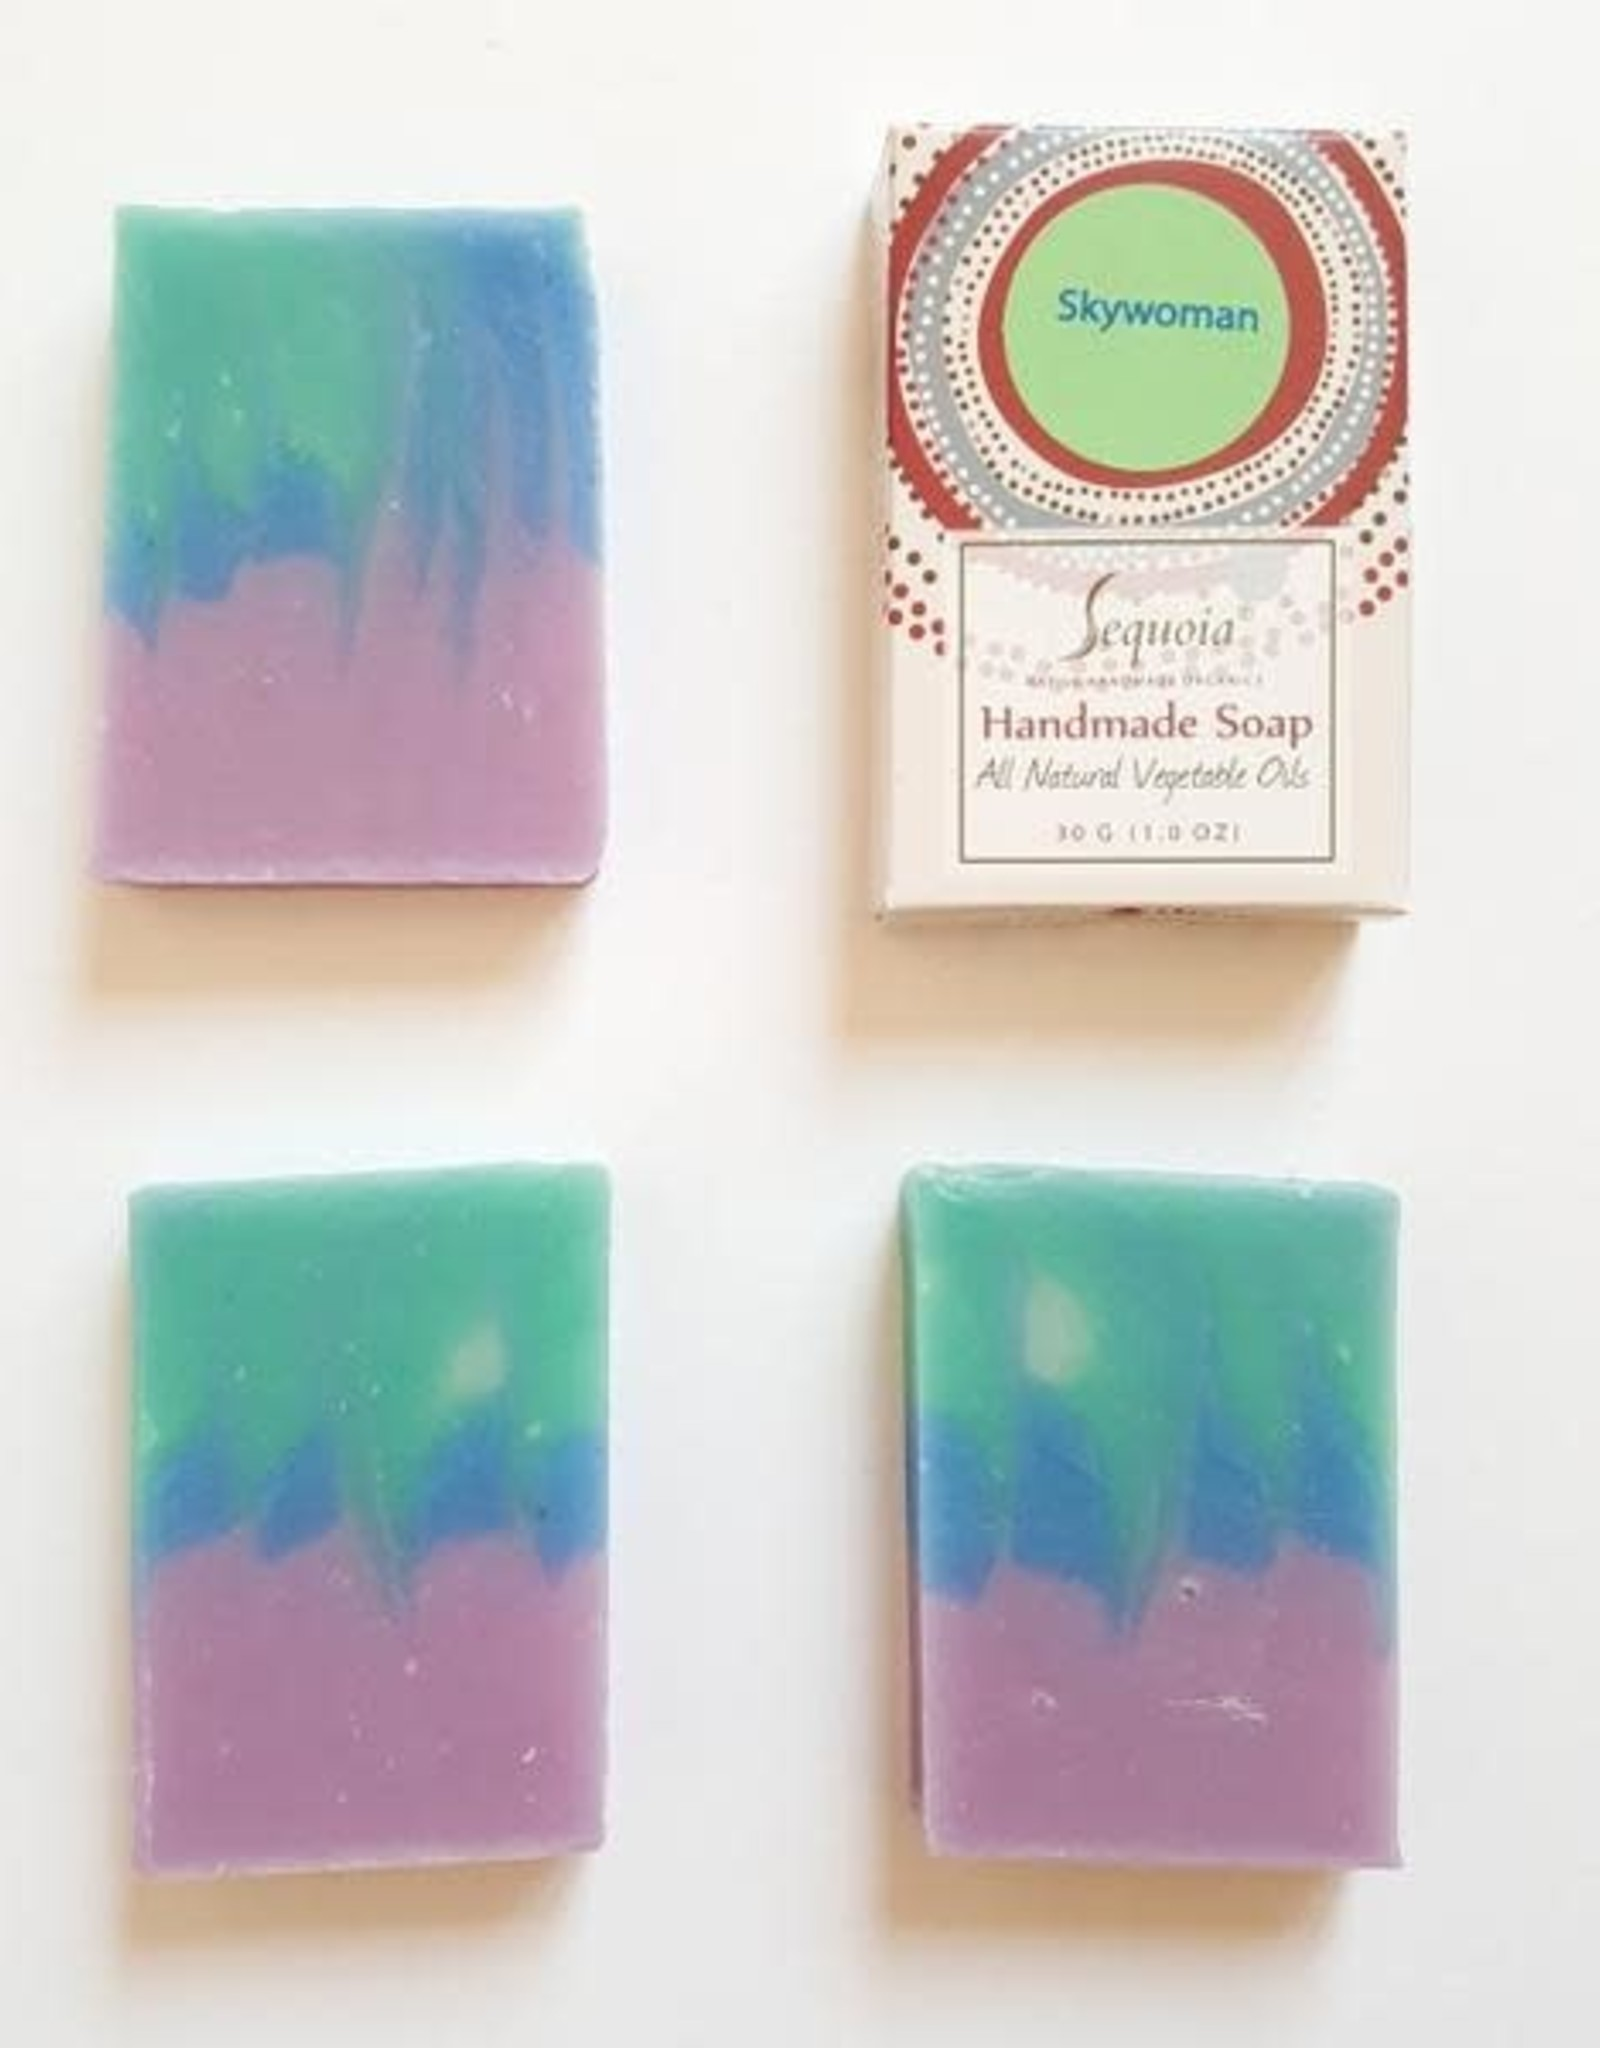 Sequoia 1oz Soap -SkyWoman